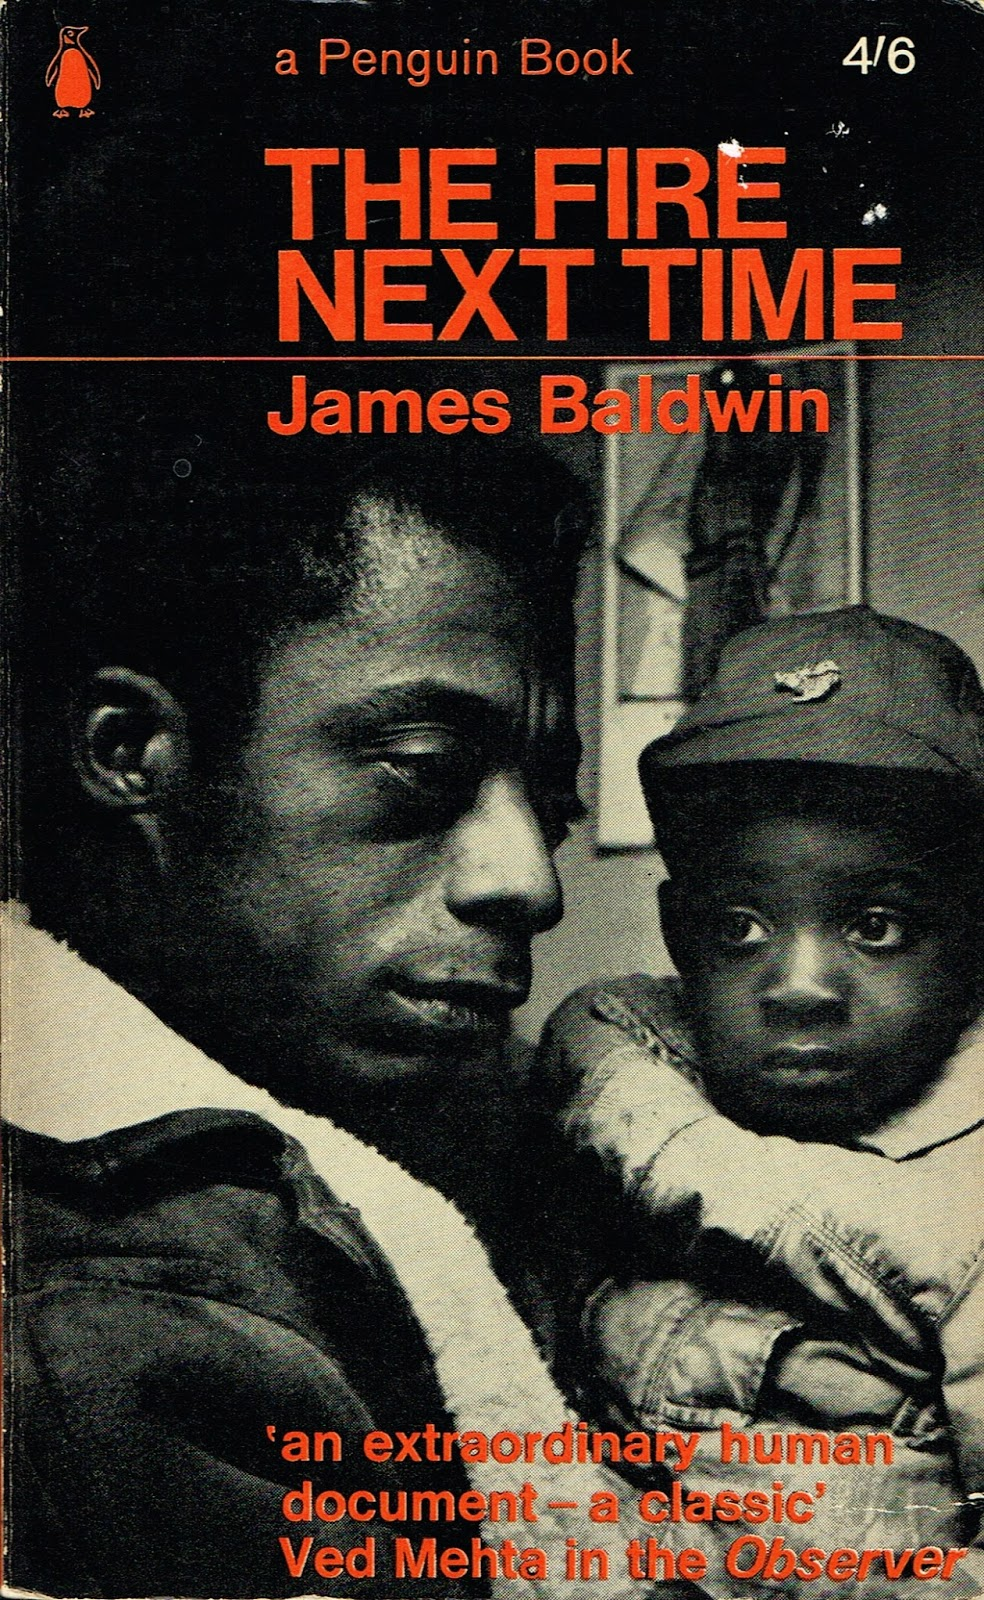 essays another country james baldwin Quoting online articles in essays another country james baldwin research paper cost for resume writing service phd writing serviceslow prices on best sellers.